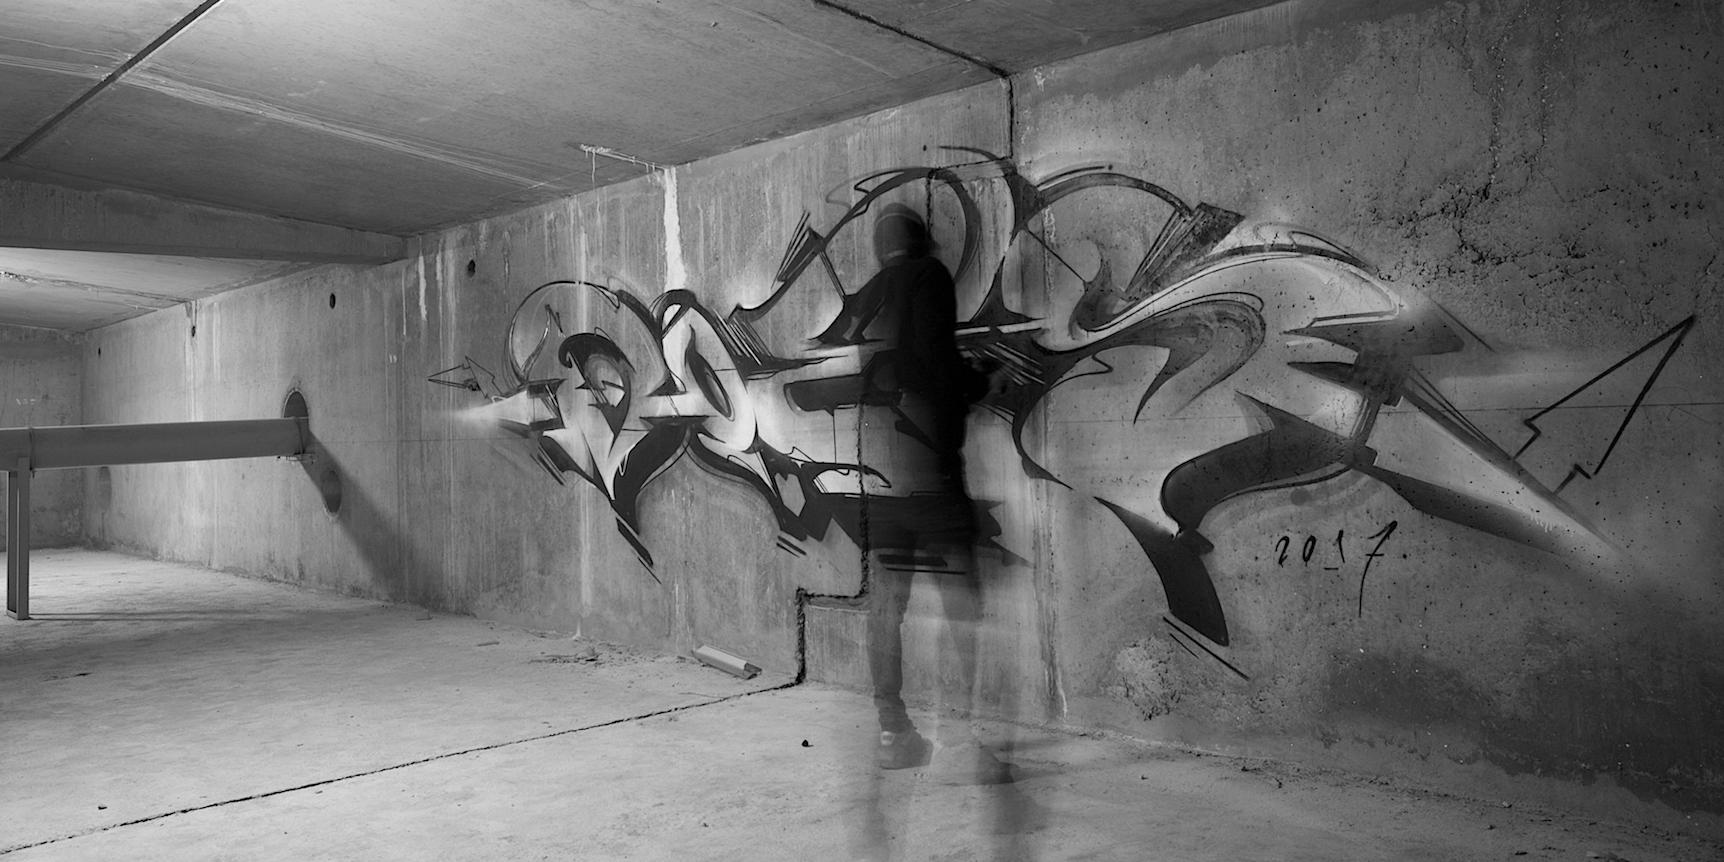 A work by Does - Paris france underground 1